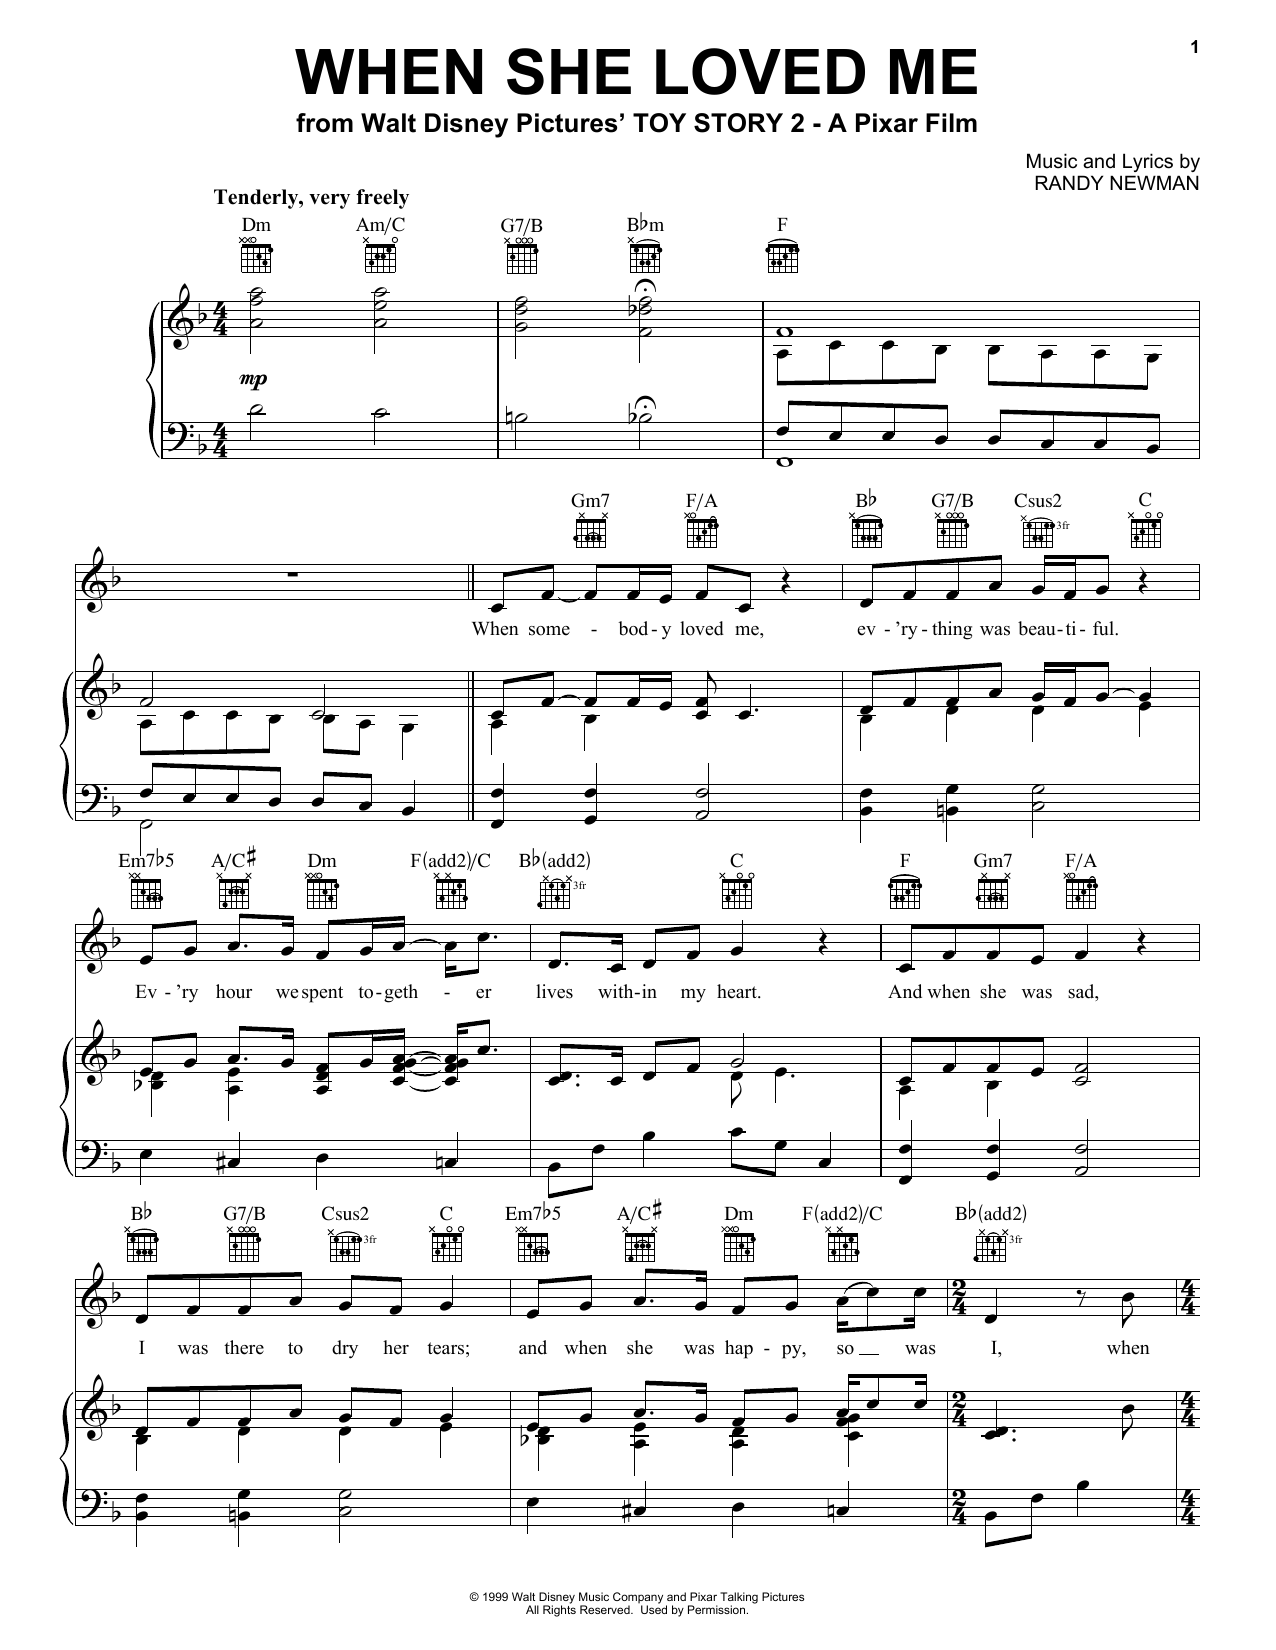 When She Loved Me (from Toy Story 2) sheet music